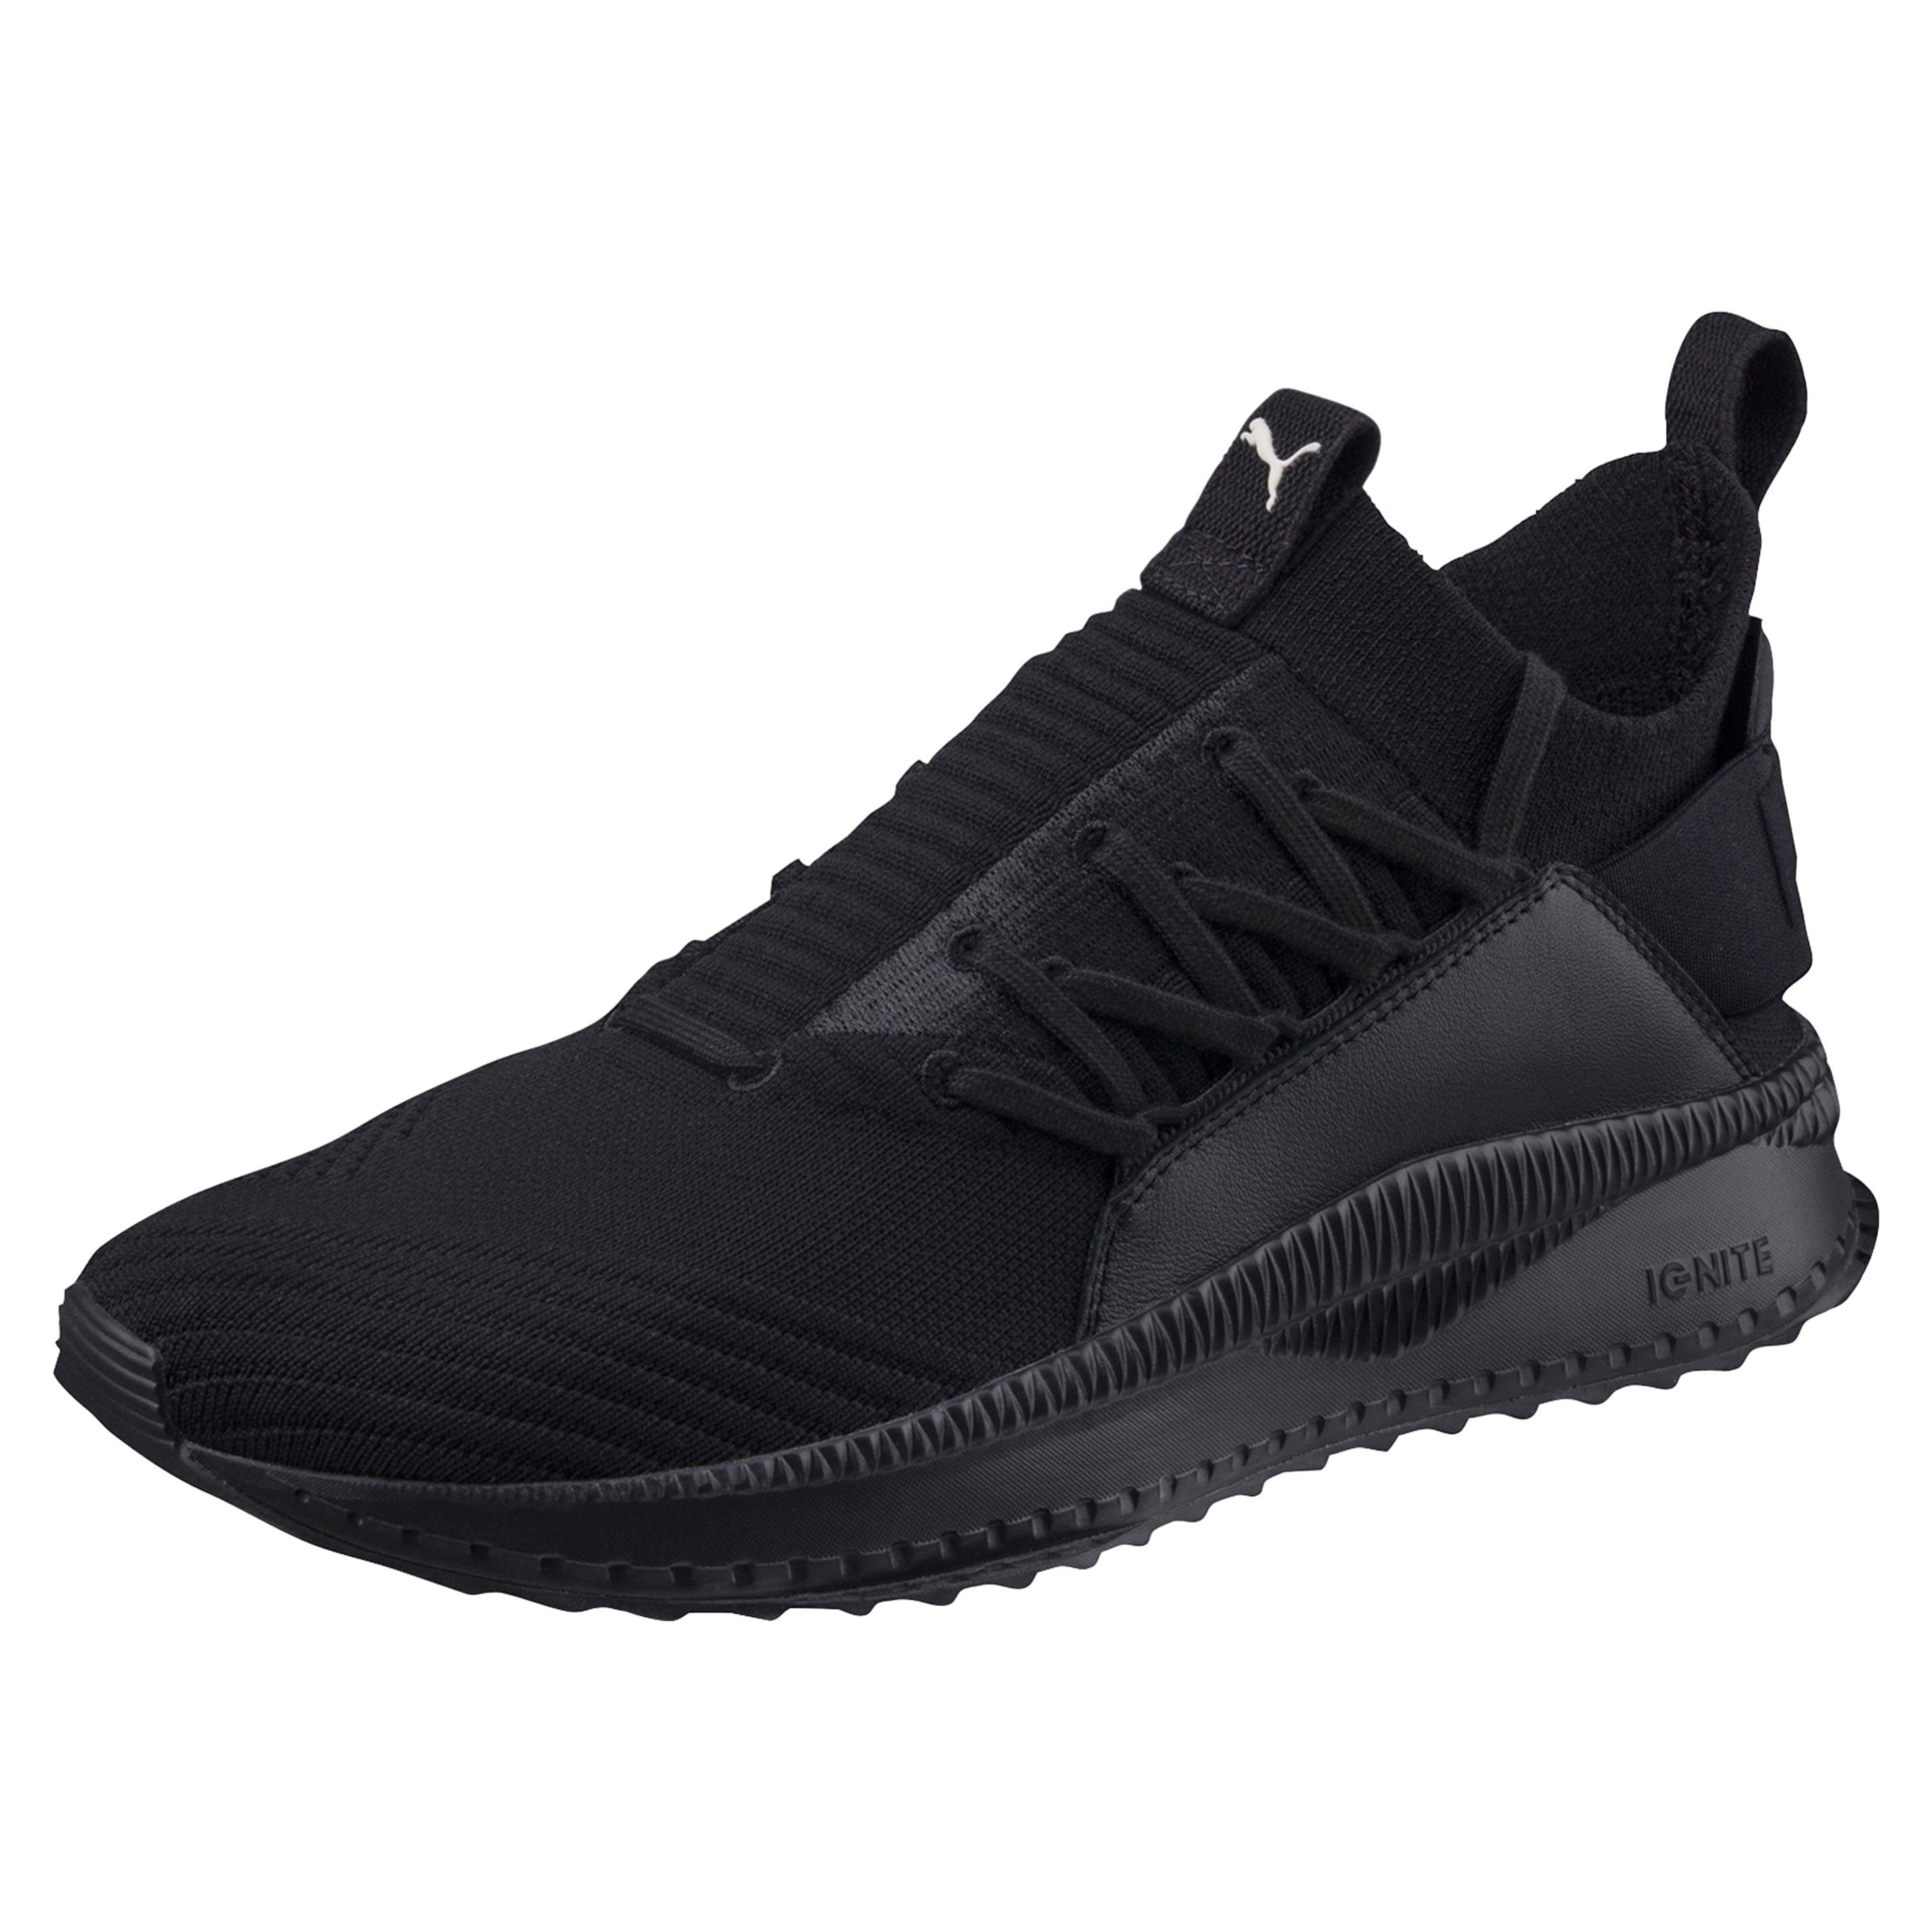 e2b825c626f0 Puma Shoes Tsugi Jun Puma Black-puma Black - Tifoshop.com